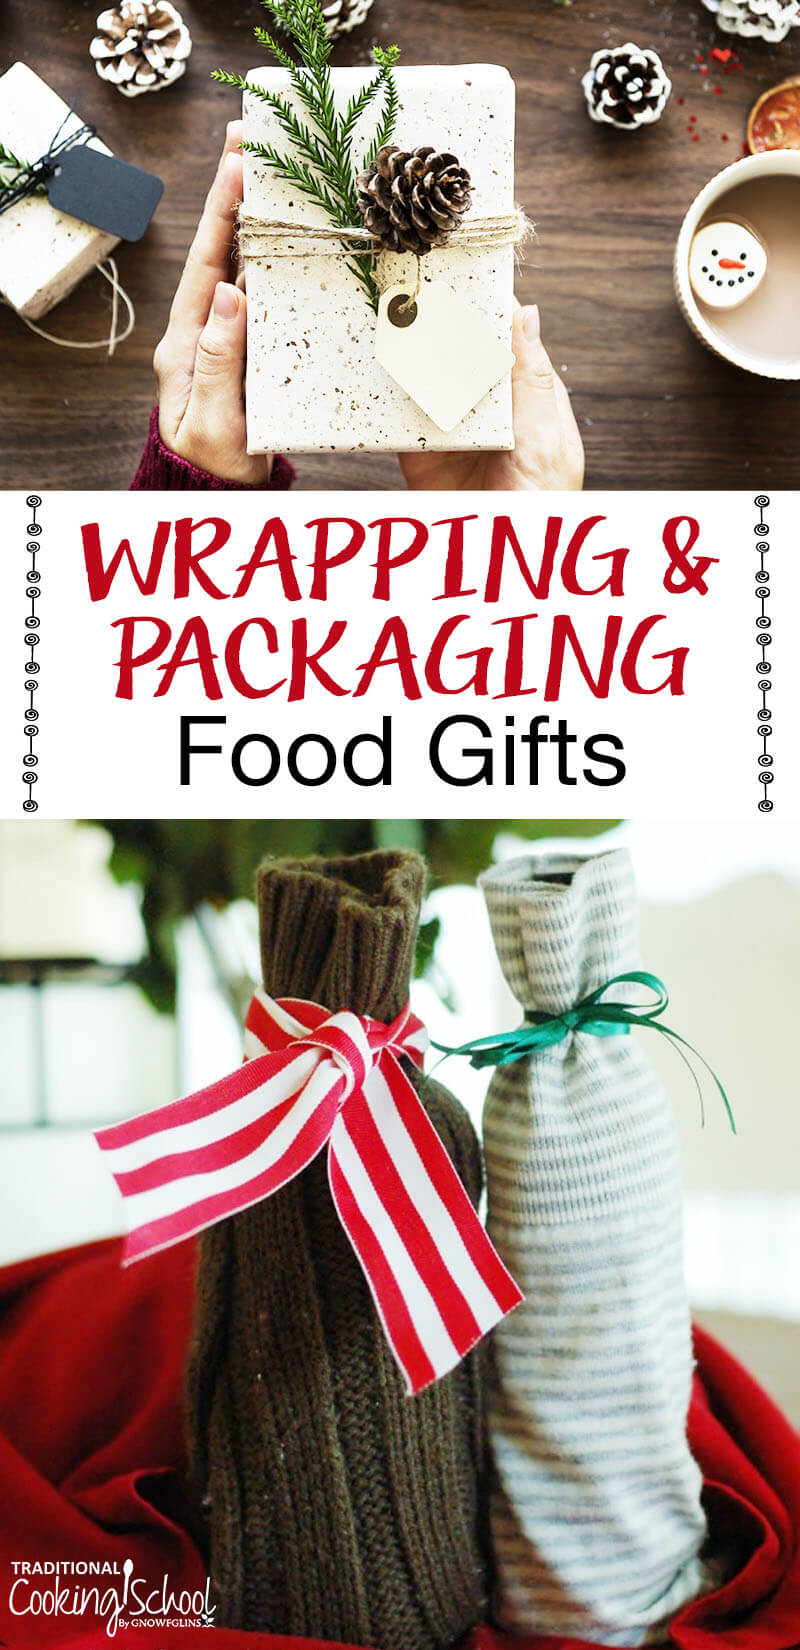 Wrapping and Packaging Food Gifts | I give away gifts of food to many of my neighbors and friends. I know I'm not alone in this as I also receive many food gifts from friends and family during the holidays. Making a beautiful package seems to be a dying art. Today I want to encourage you to resurrect this art with the gifts of food you give — through ideas for frugal and simple wrappings for bottles, jars, tins, boxes, and more. | TraditionalCookingSchool.com